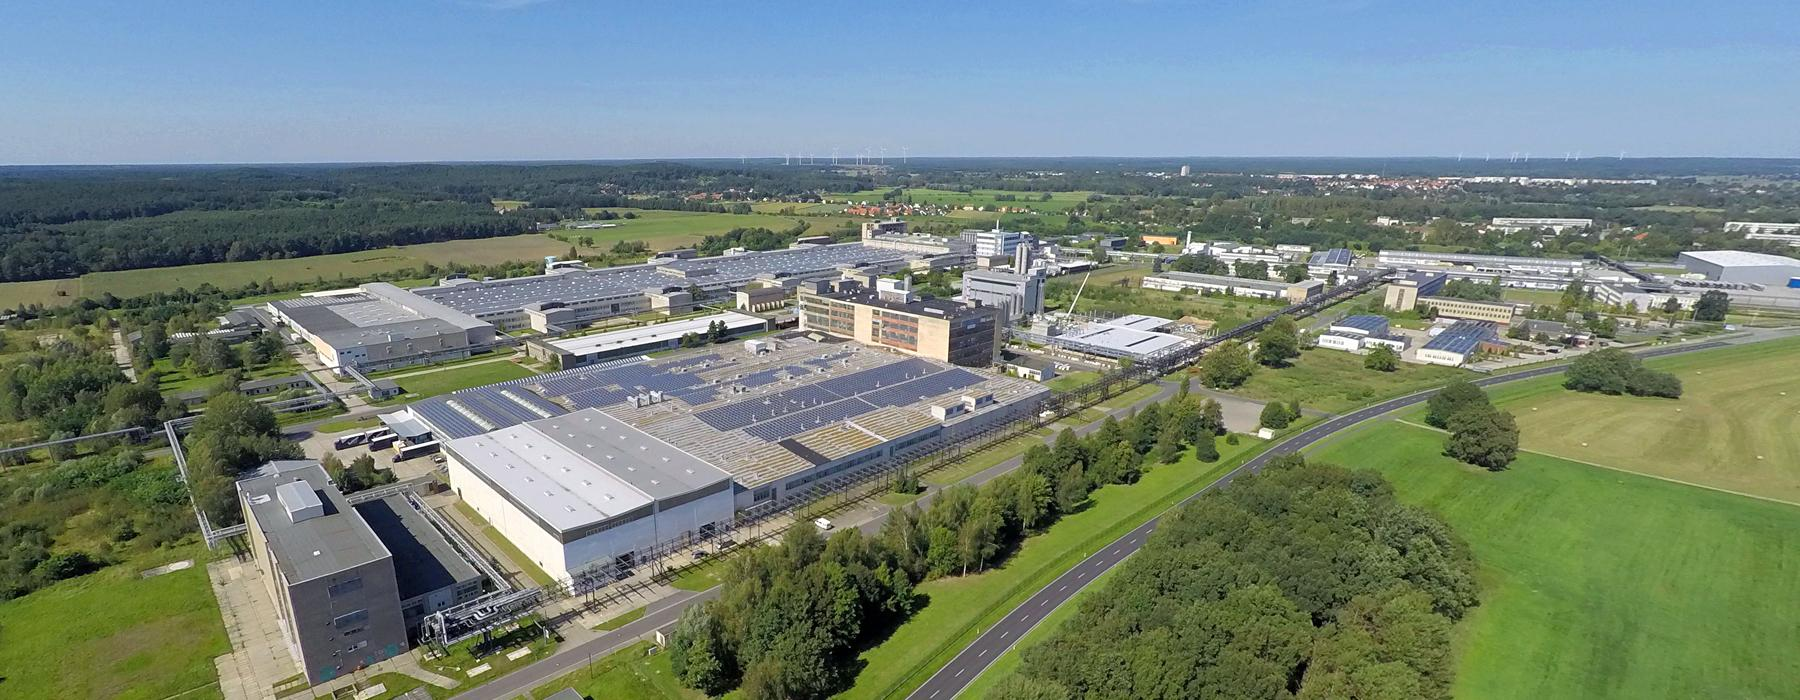 Aerial view of Guben industrial estate